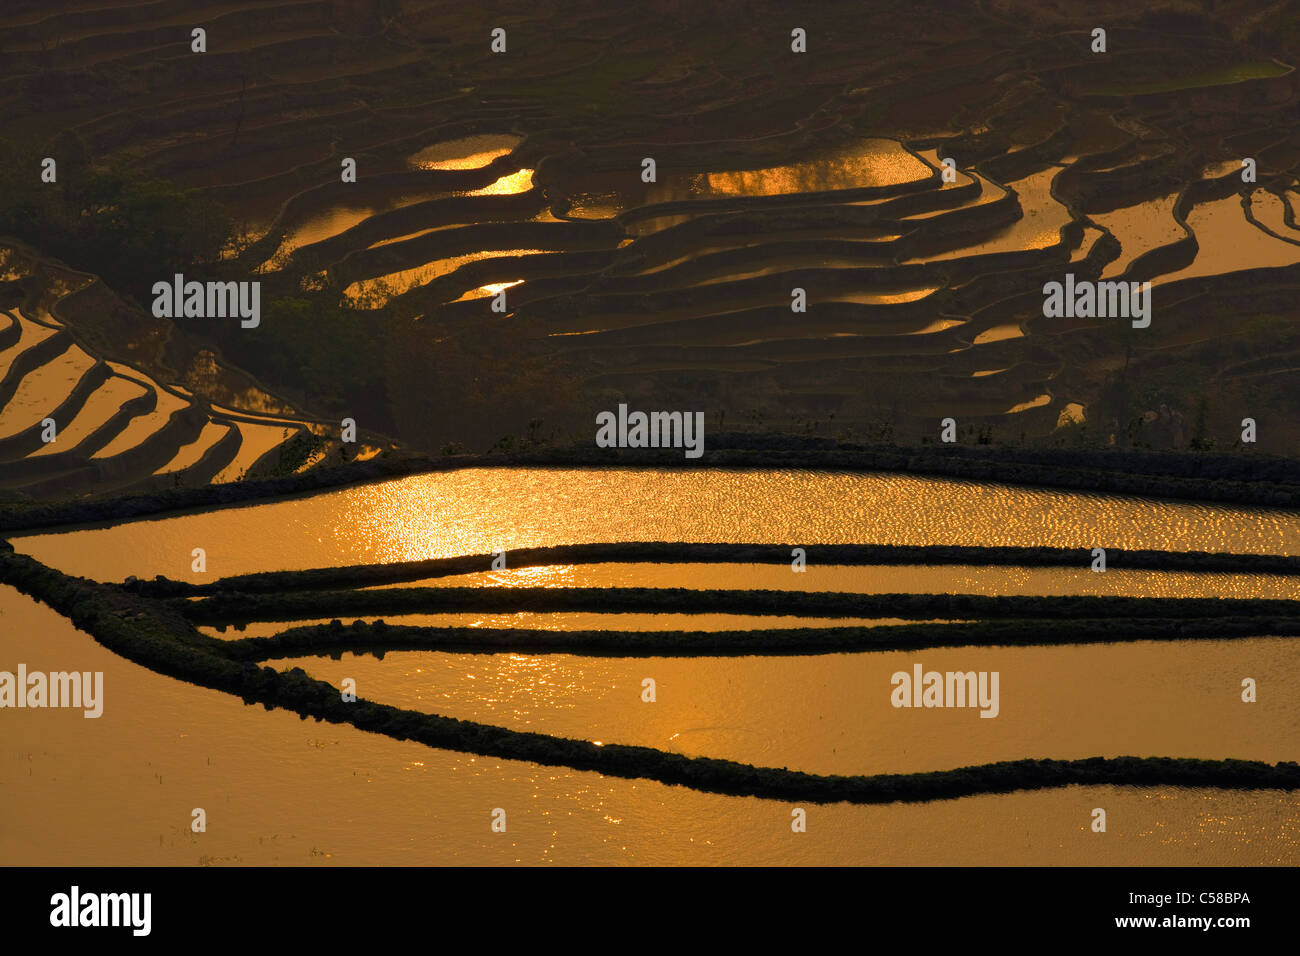 Yuanyang, China, Asia, rice terraces, growing of rice, rice fields, agriculture, water, reflection, evening light - Stock Image